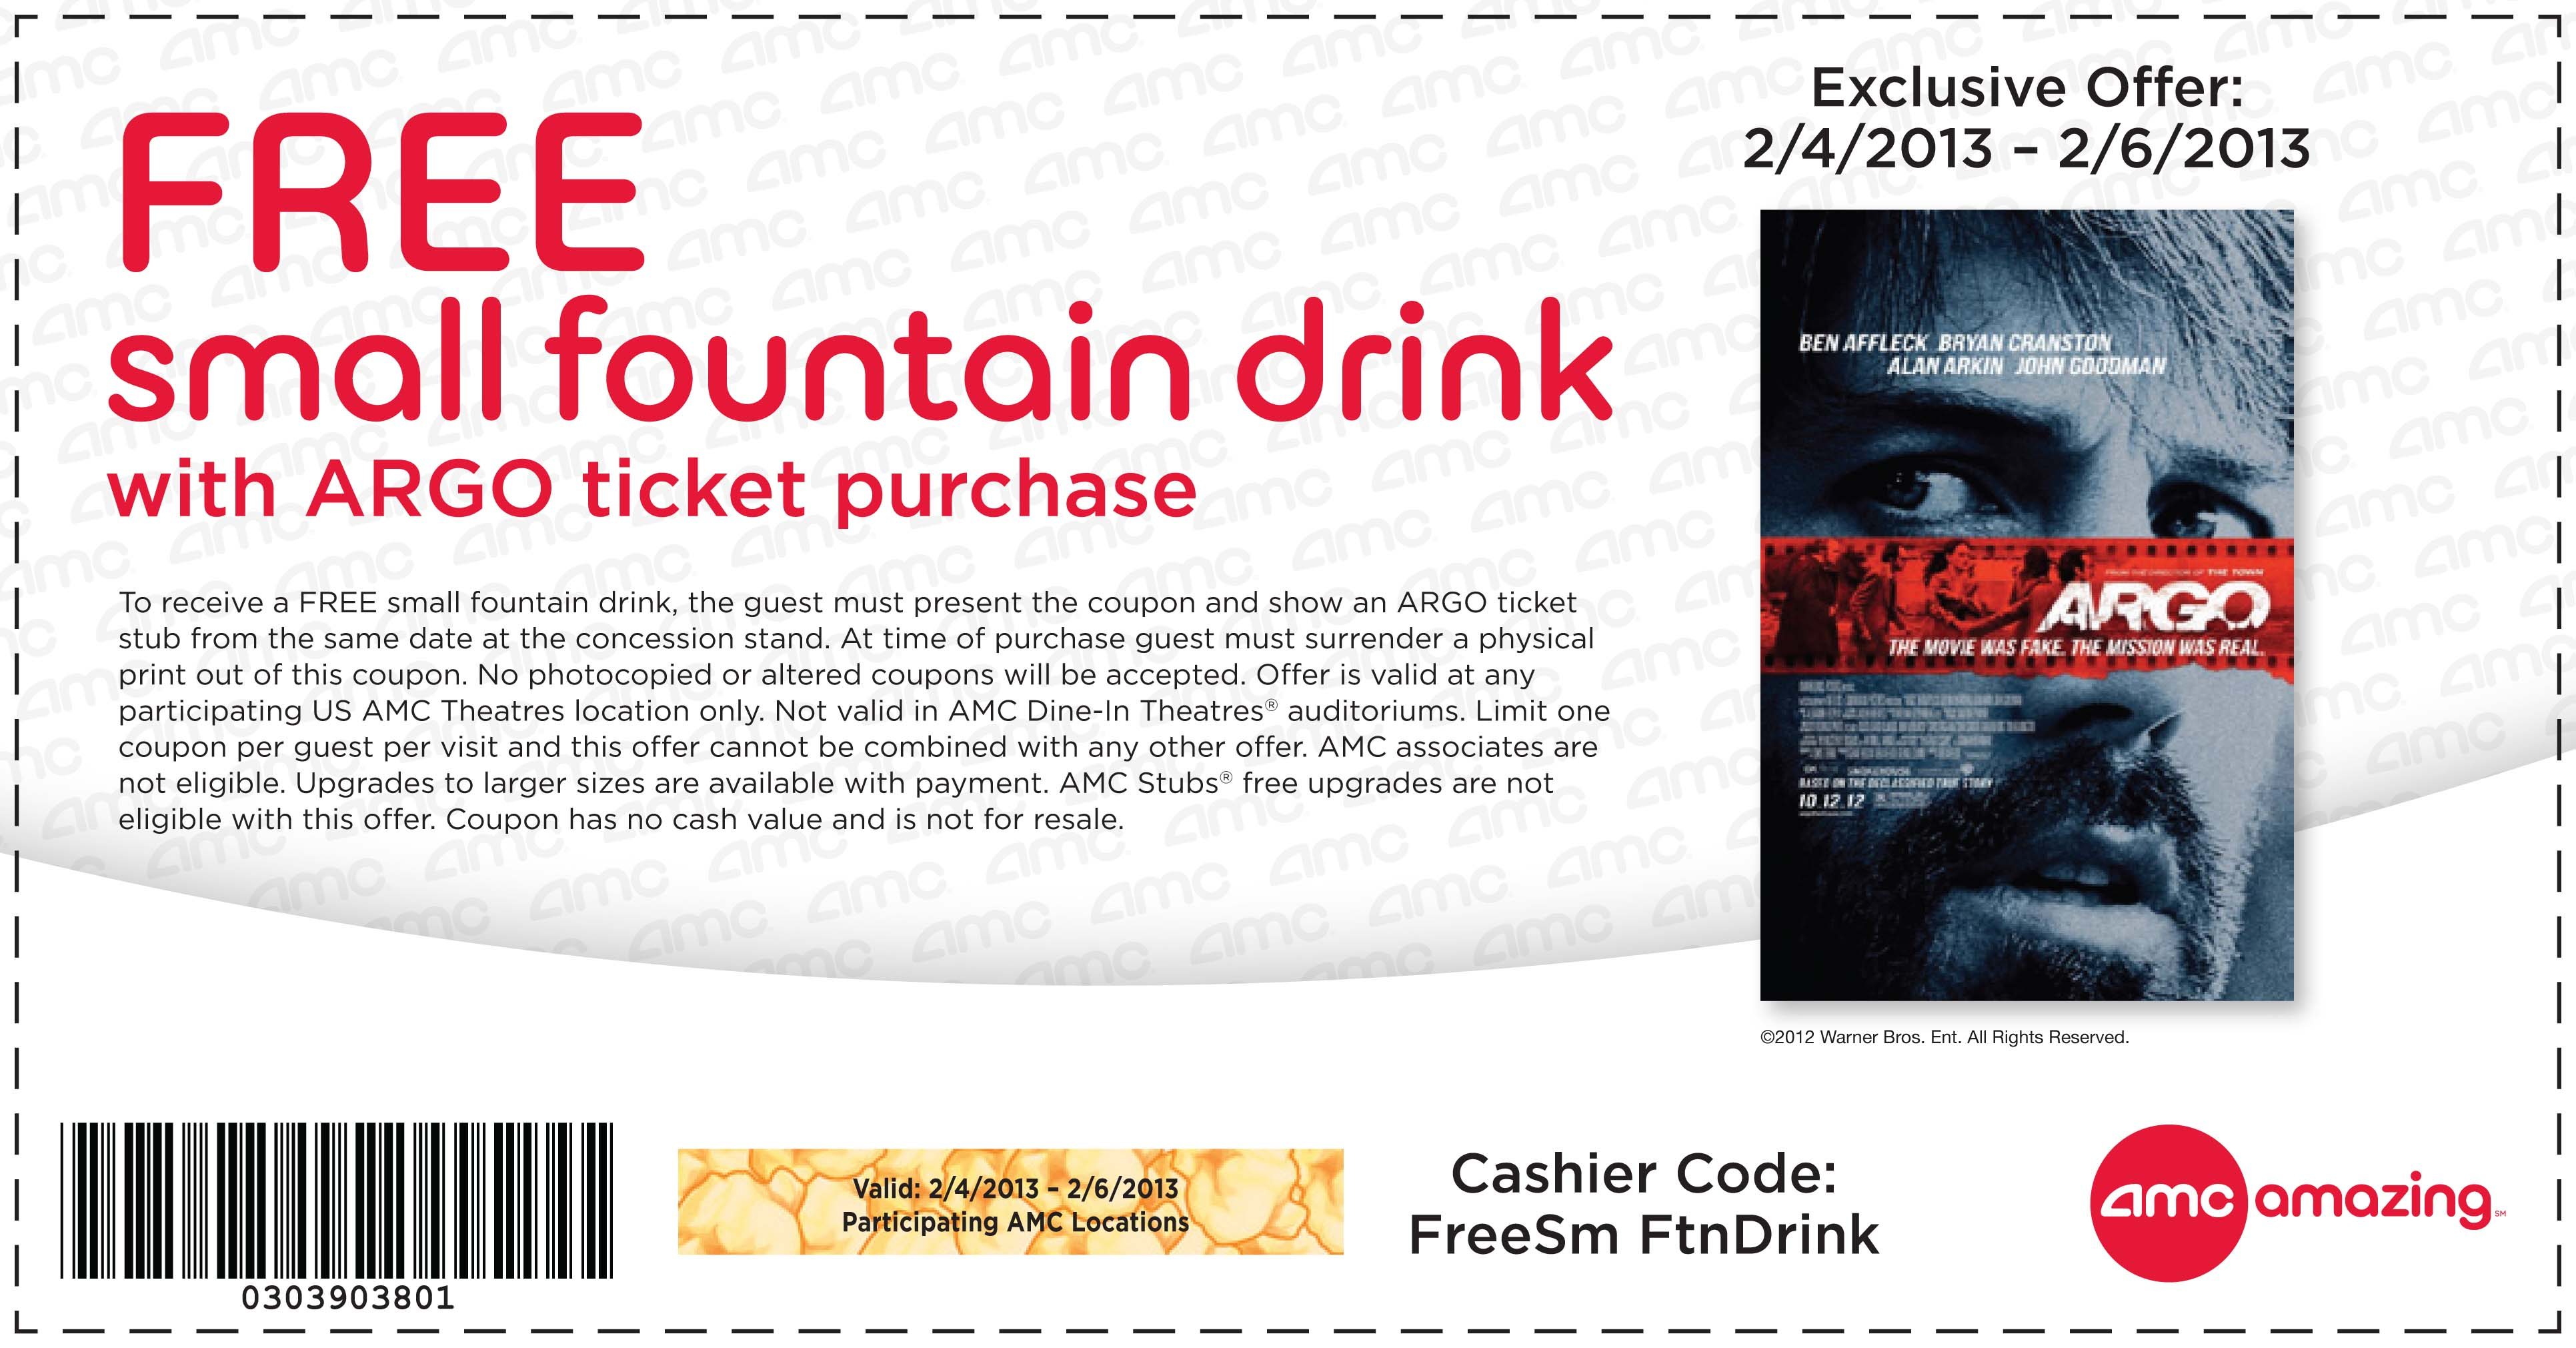 Harkins theatres discount coupons promotional code